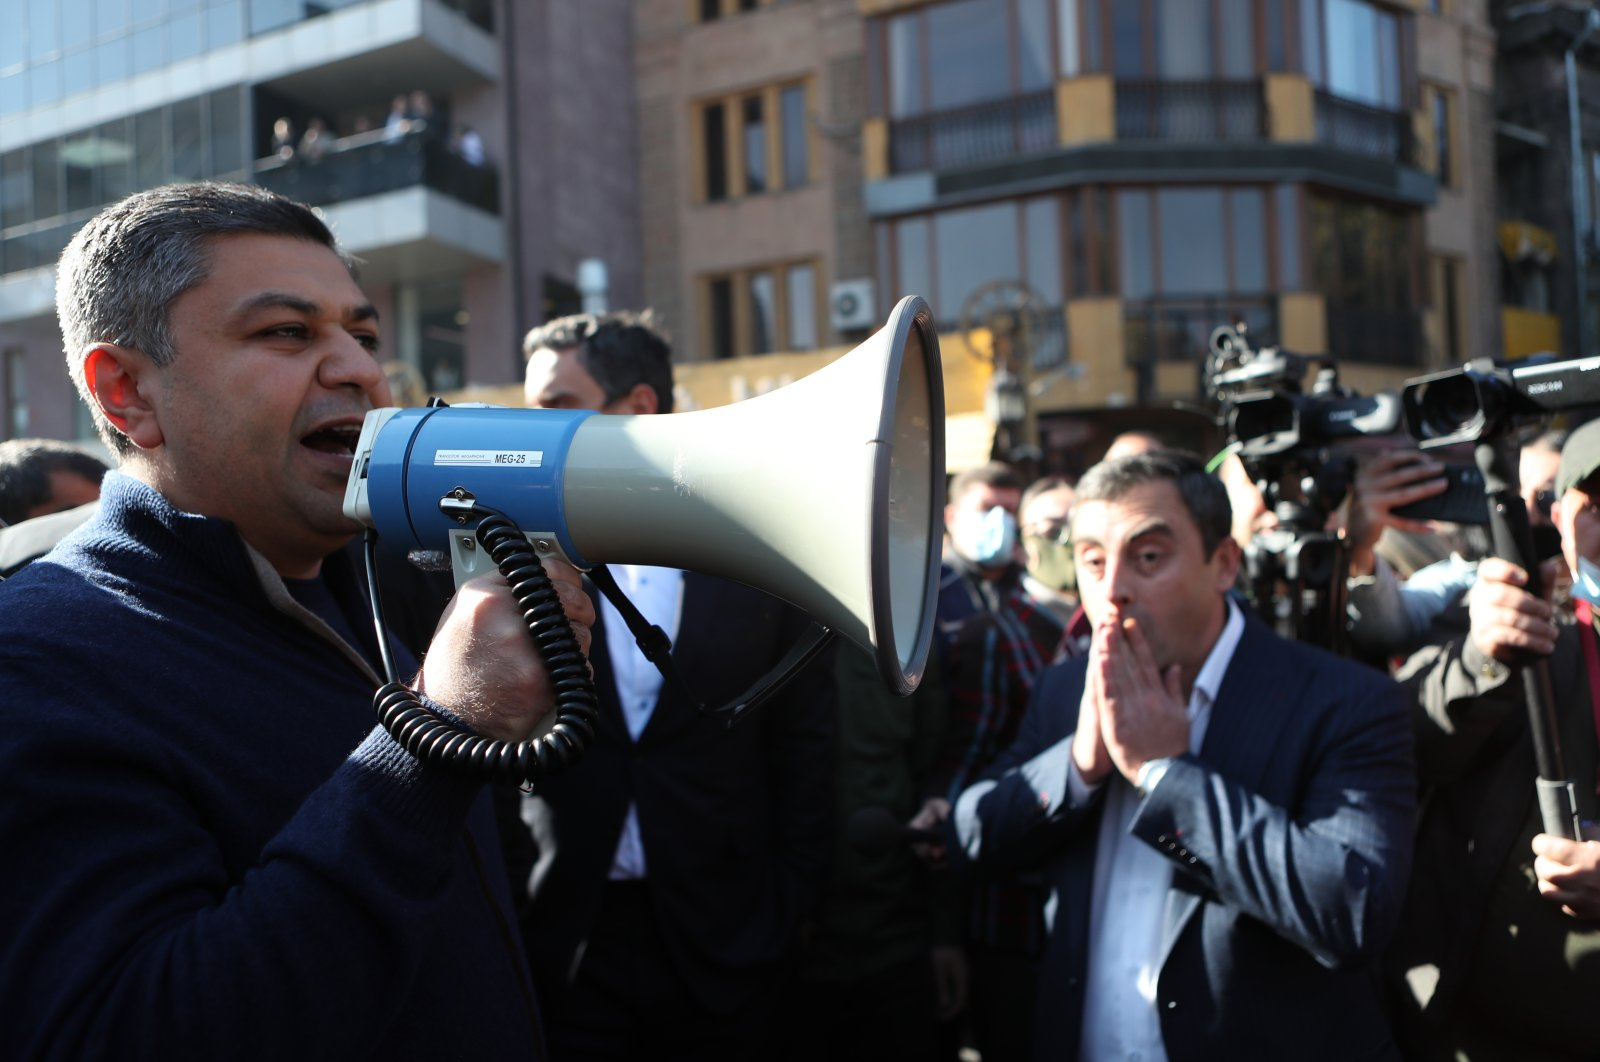 An Armenian opposition leader and former Director of Armenian National Security Service (NSS) Artur Vanetsyan (L) speaks during a rally in the Freedom Square in Yerevan, Armenia, Nov. 11, 2020. (EPA Photo)